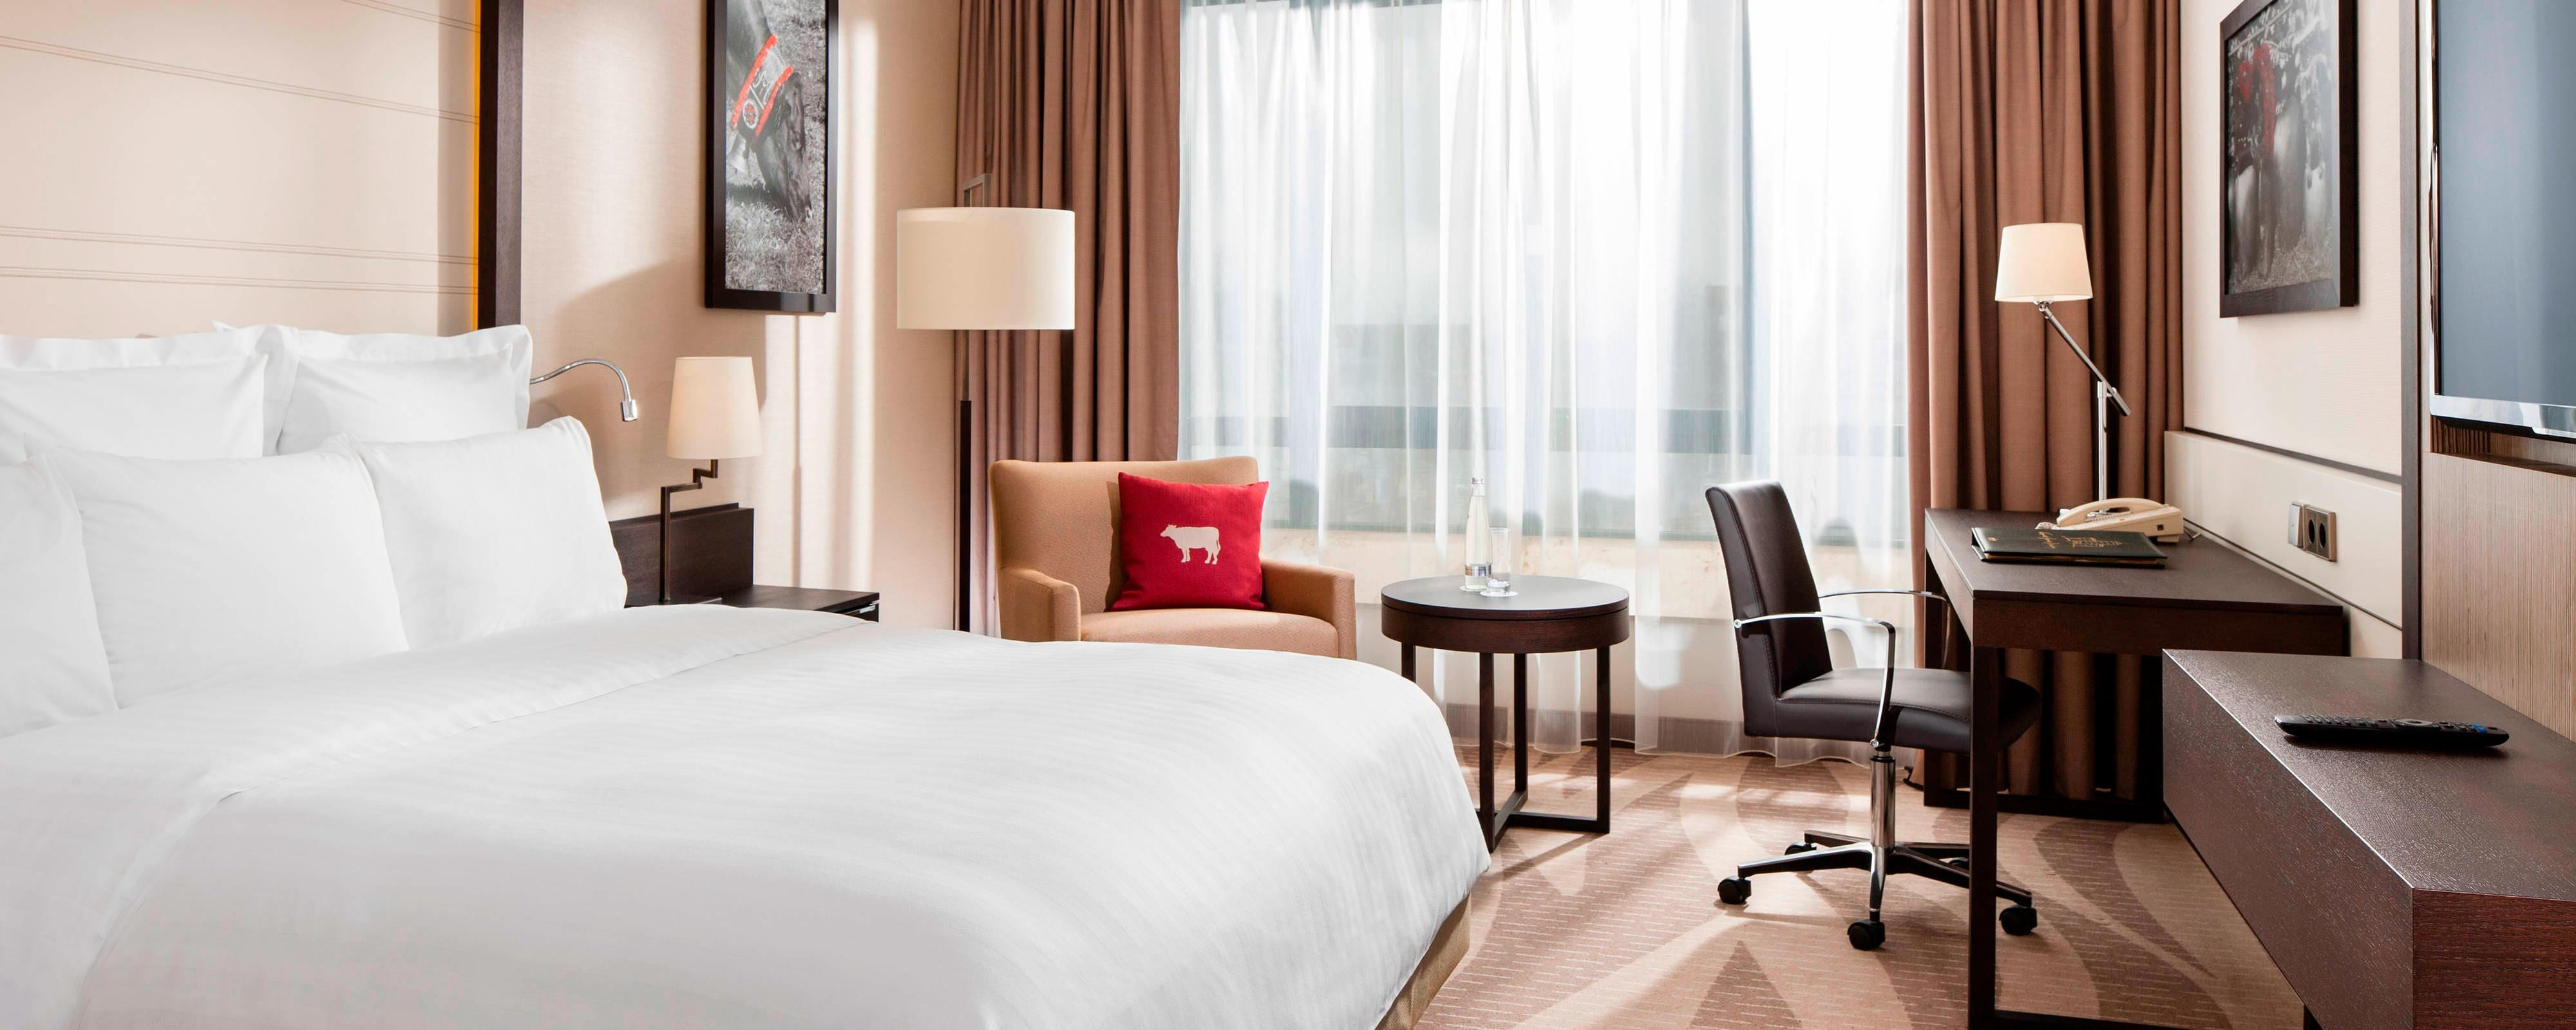 Habitación del Munich Airport Marriott Hotel